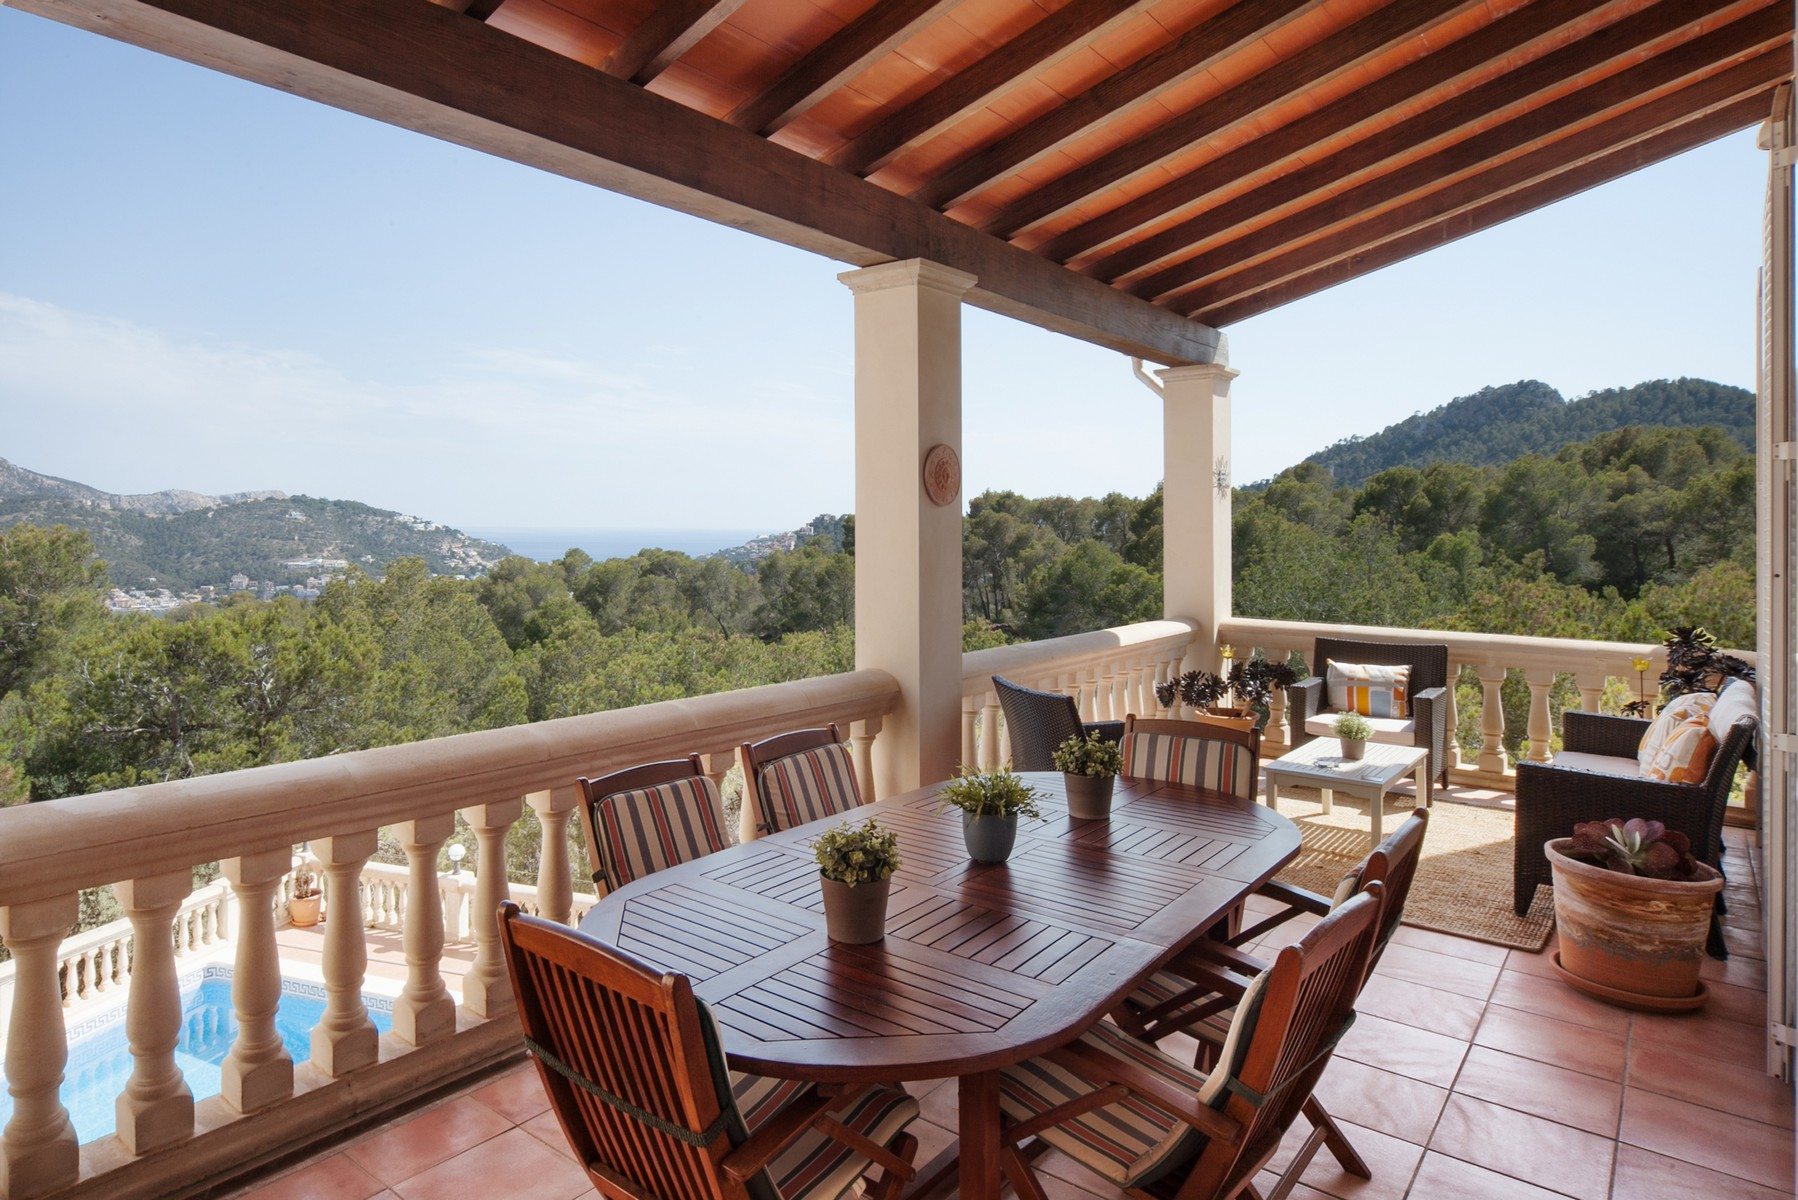 Single Family Home for Sale at Spacious villa with sea views in Mon Port Port Andratx, Mallorca, 07157 Spain